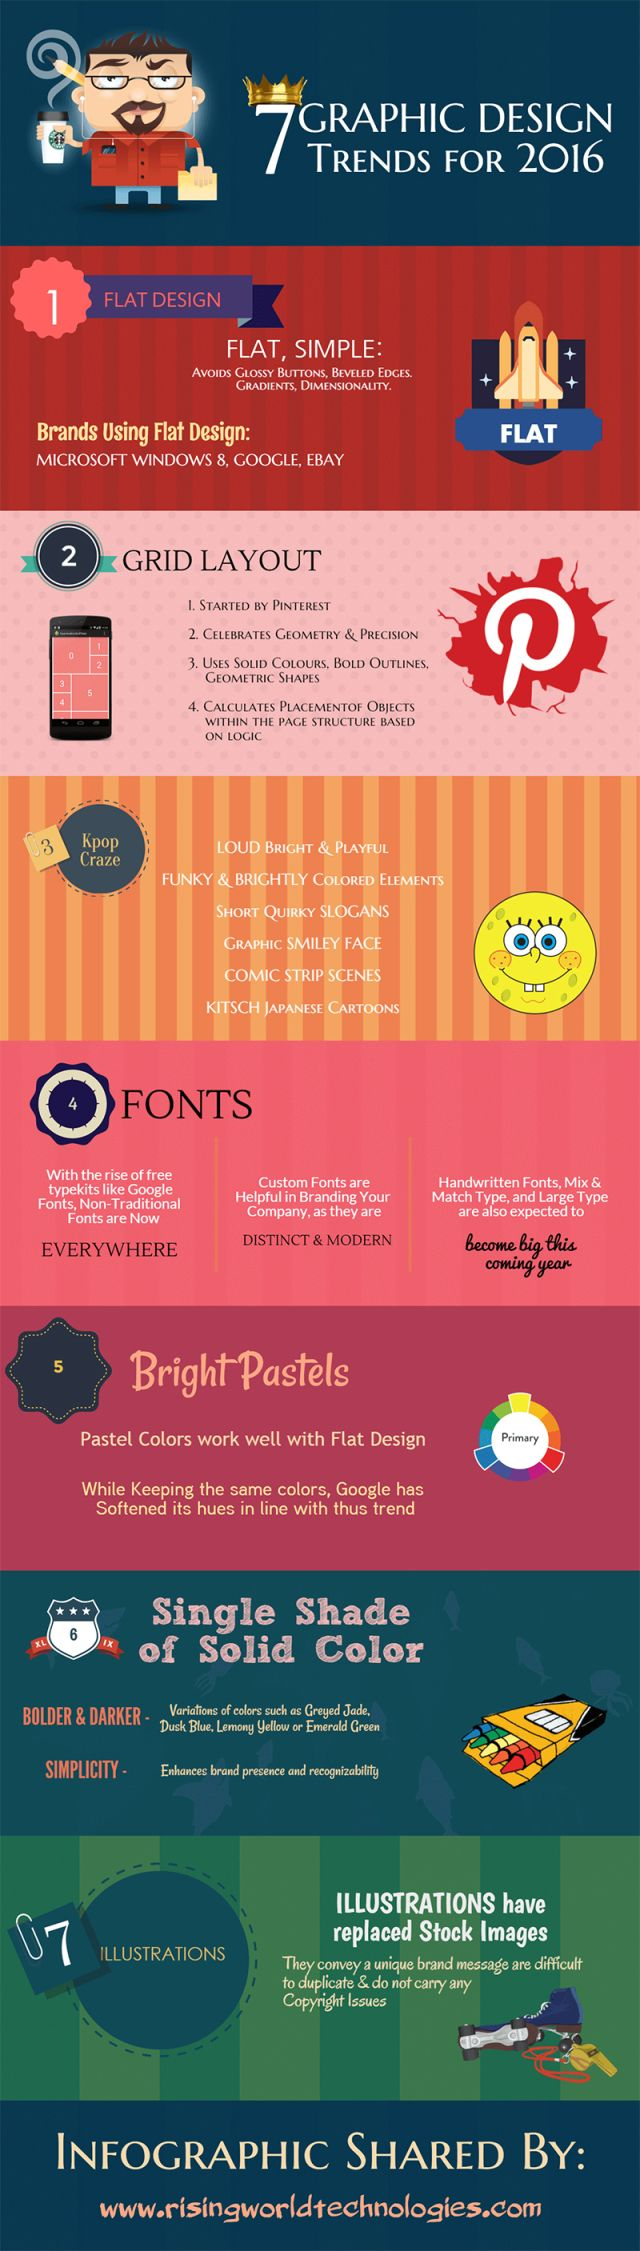 Poster design trends - 7 Graphic Design Trends That Will Help Your Business Stand Out In 2016 Redwebdesign